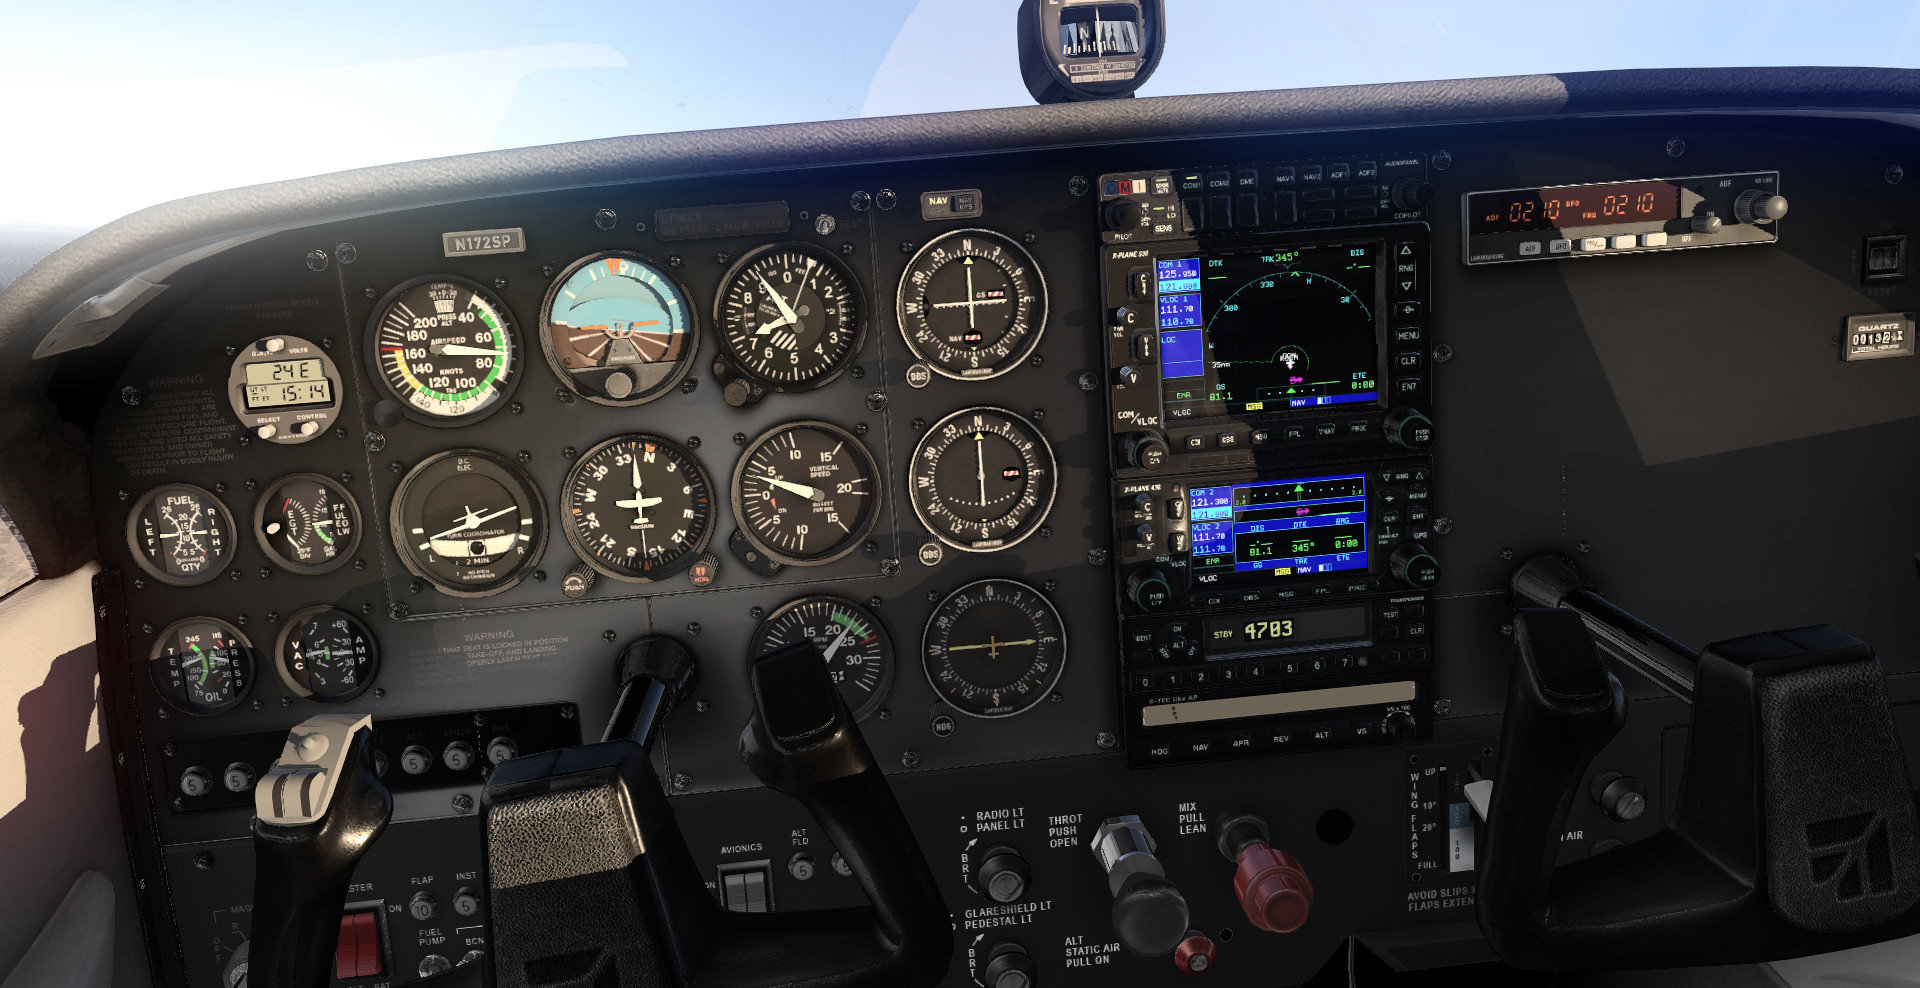 PBR Cockpit Overhaul Project